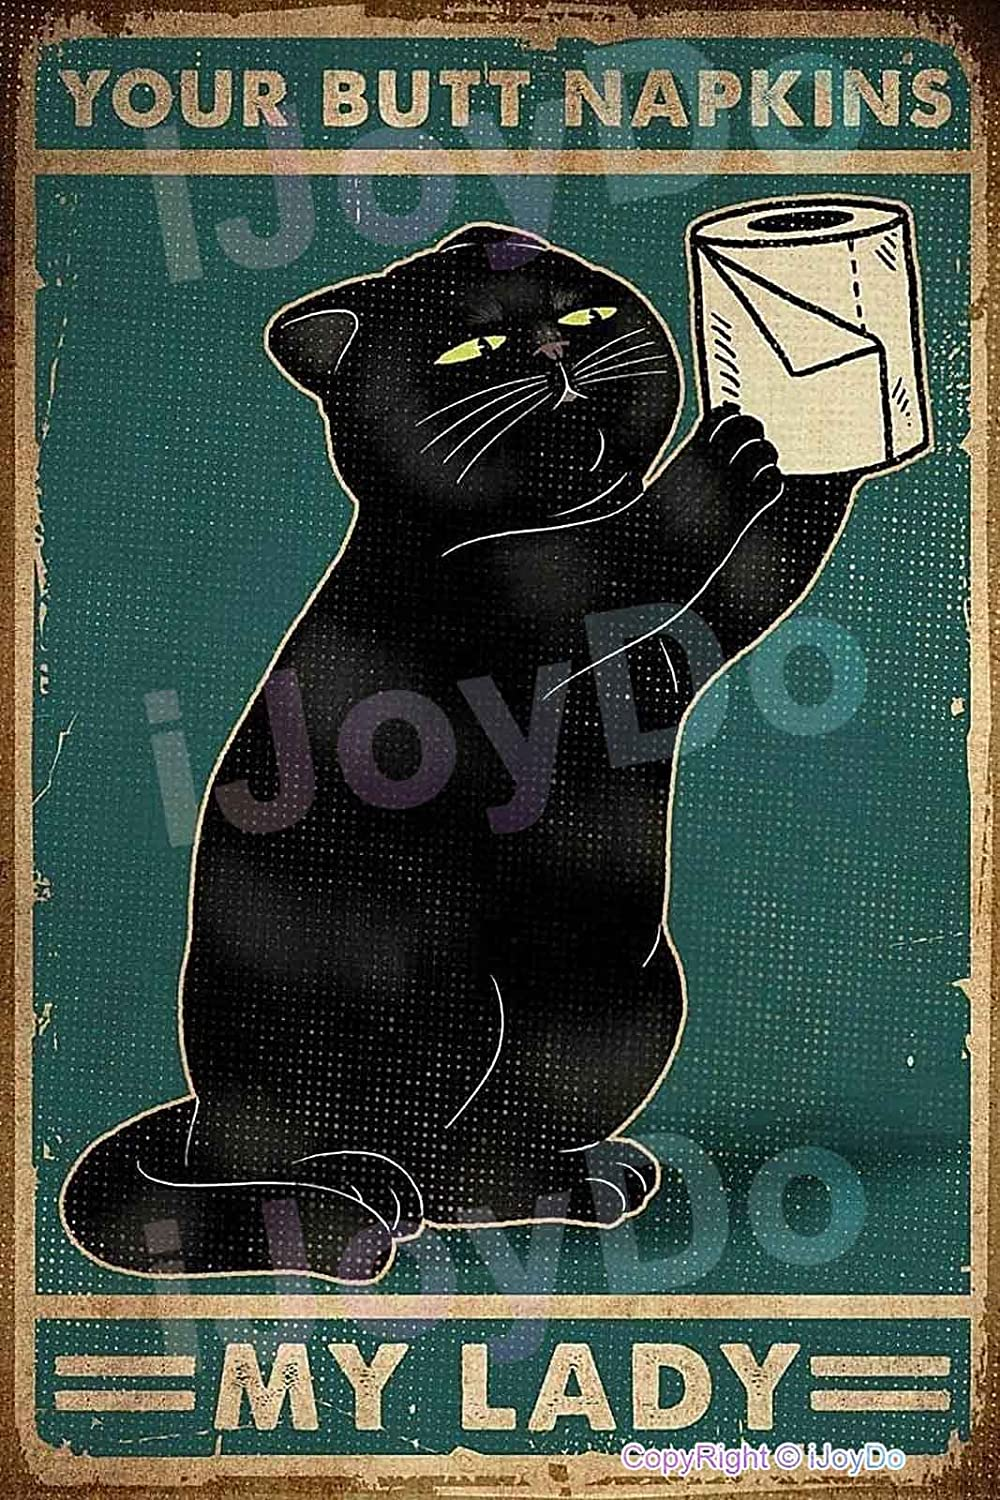 Black Cat with Toilet Paper Your Butt Napkins My Lady Satin Portrait Metal Poster Retro Tin Sign Metal Sign Vintage Plaque Metal Tin Sign Wall Decor for Home Kitchen Garage Bar Pub Gift 12 X 8 Inches